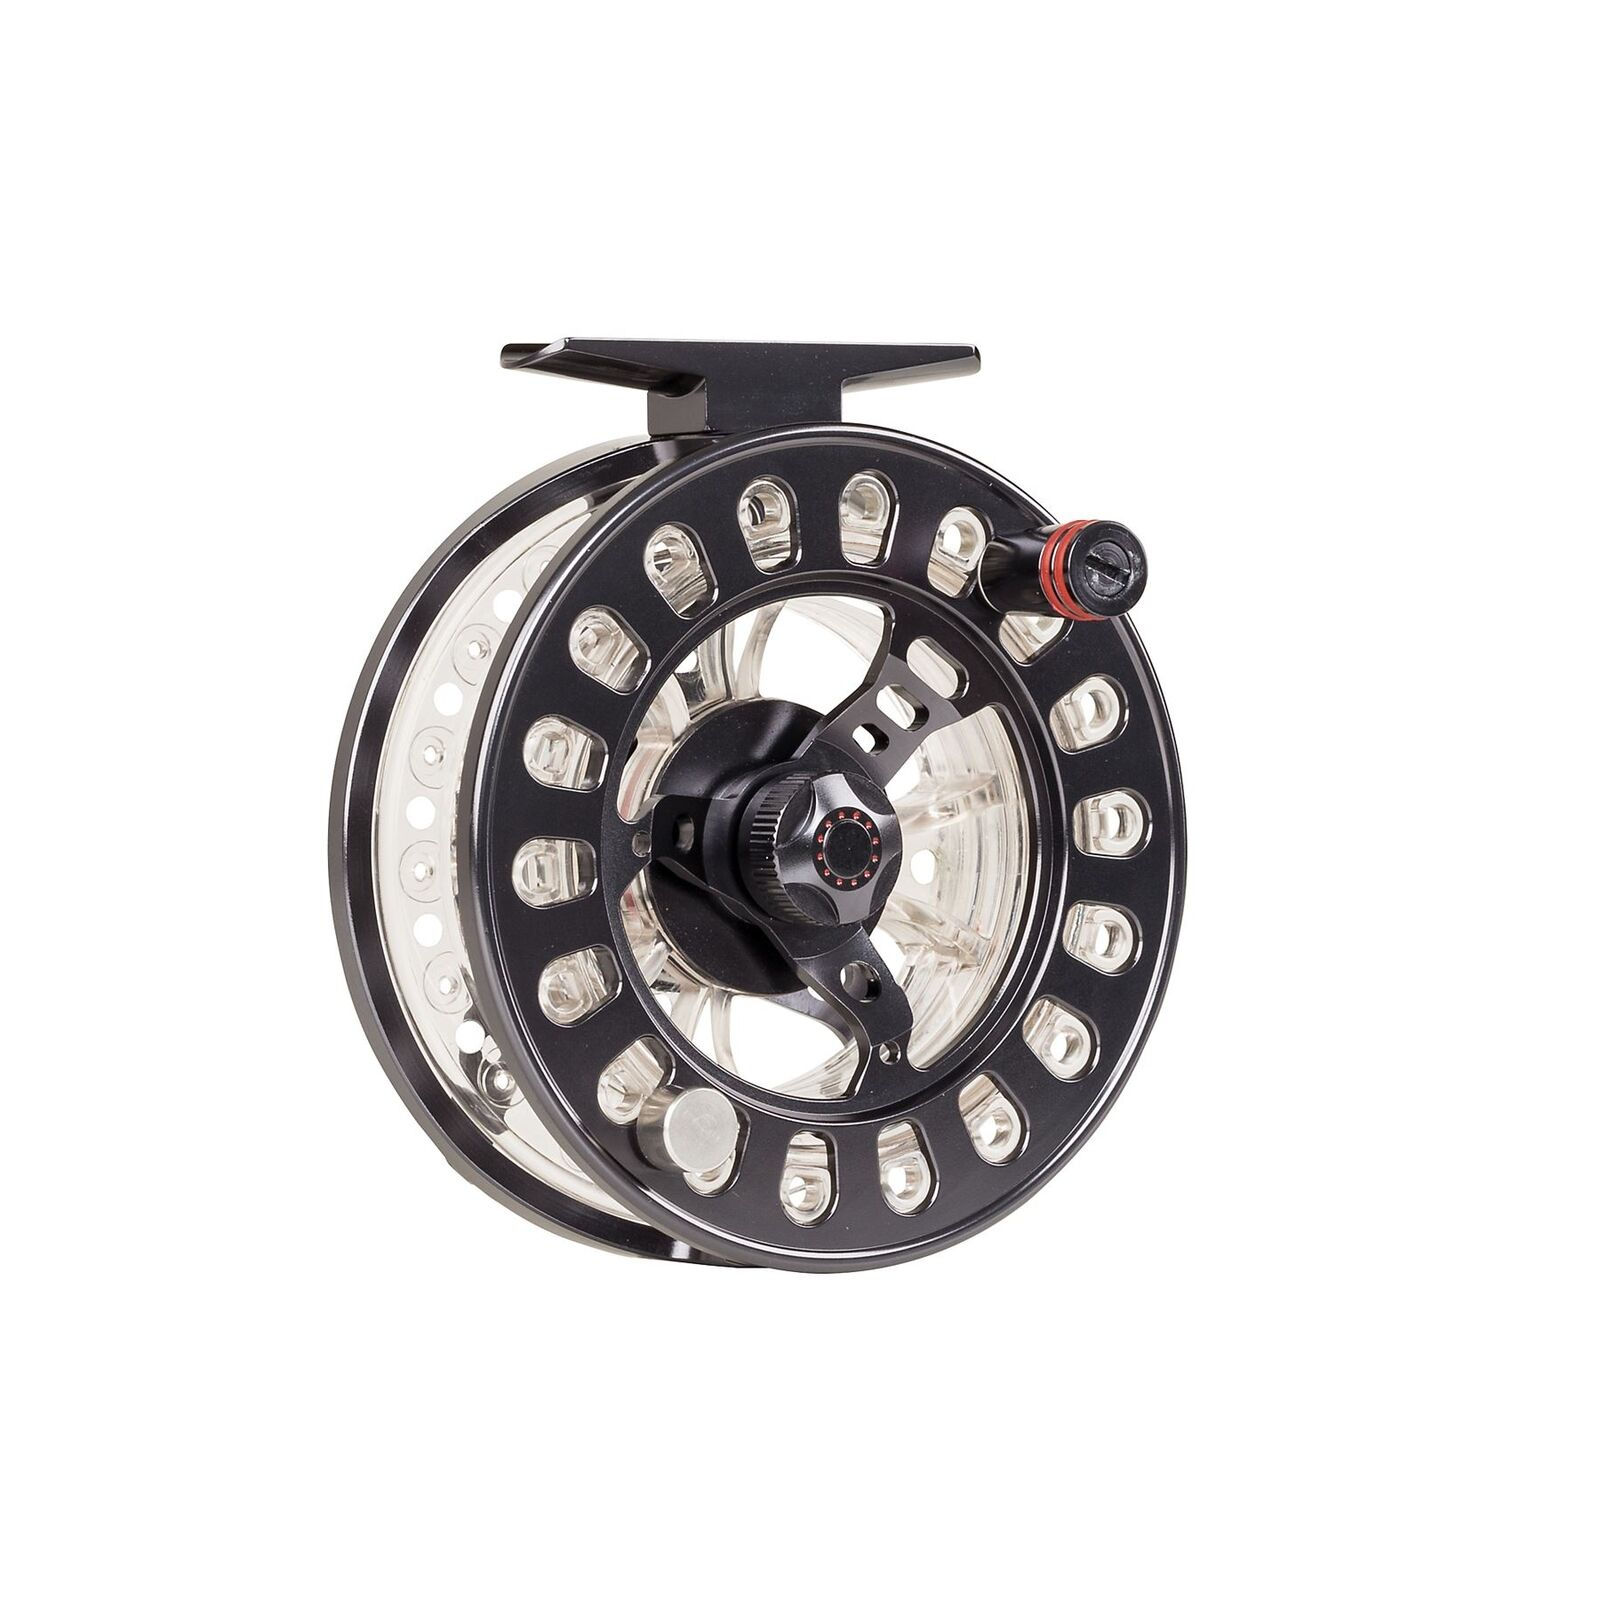 grigios QRS 910 1112Quad sistema di classificazione FLY FISHING REEL